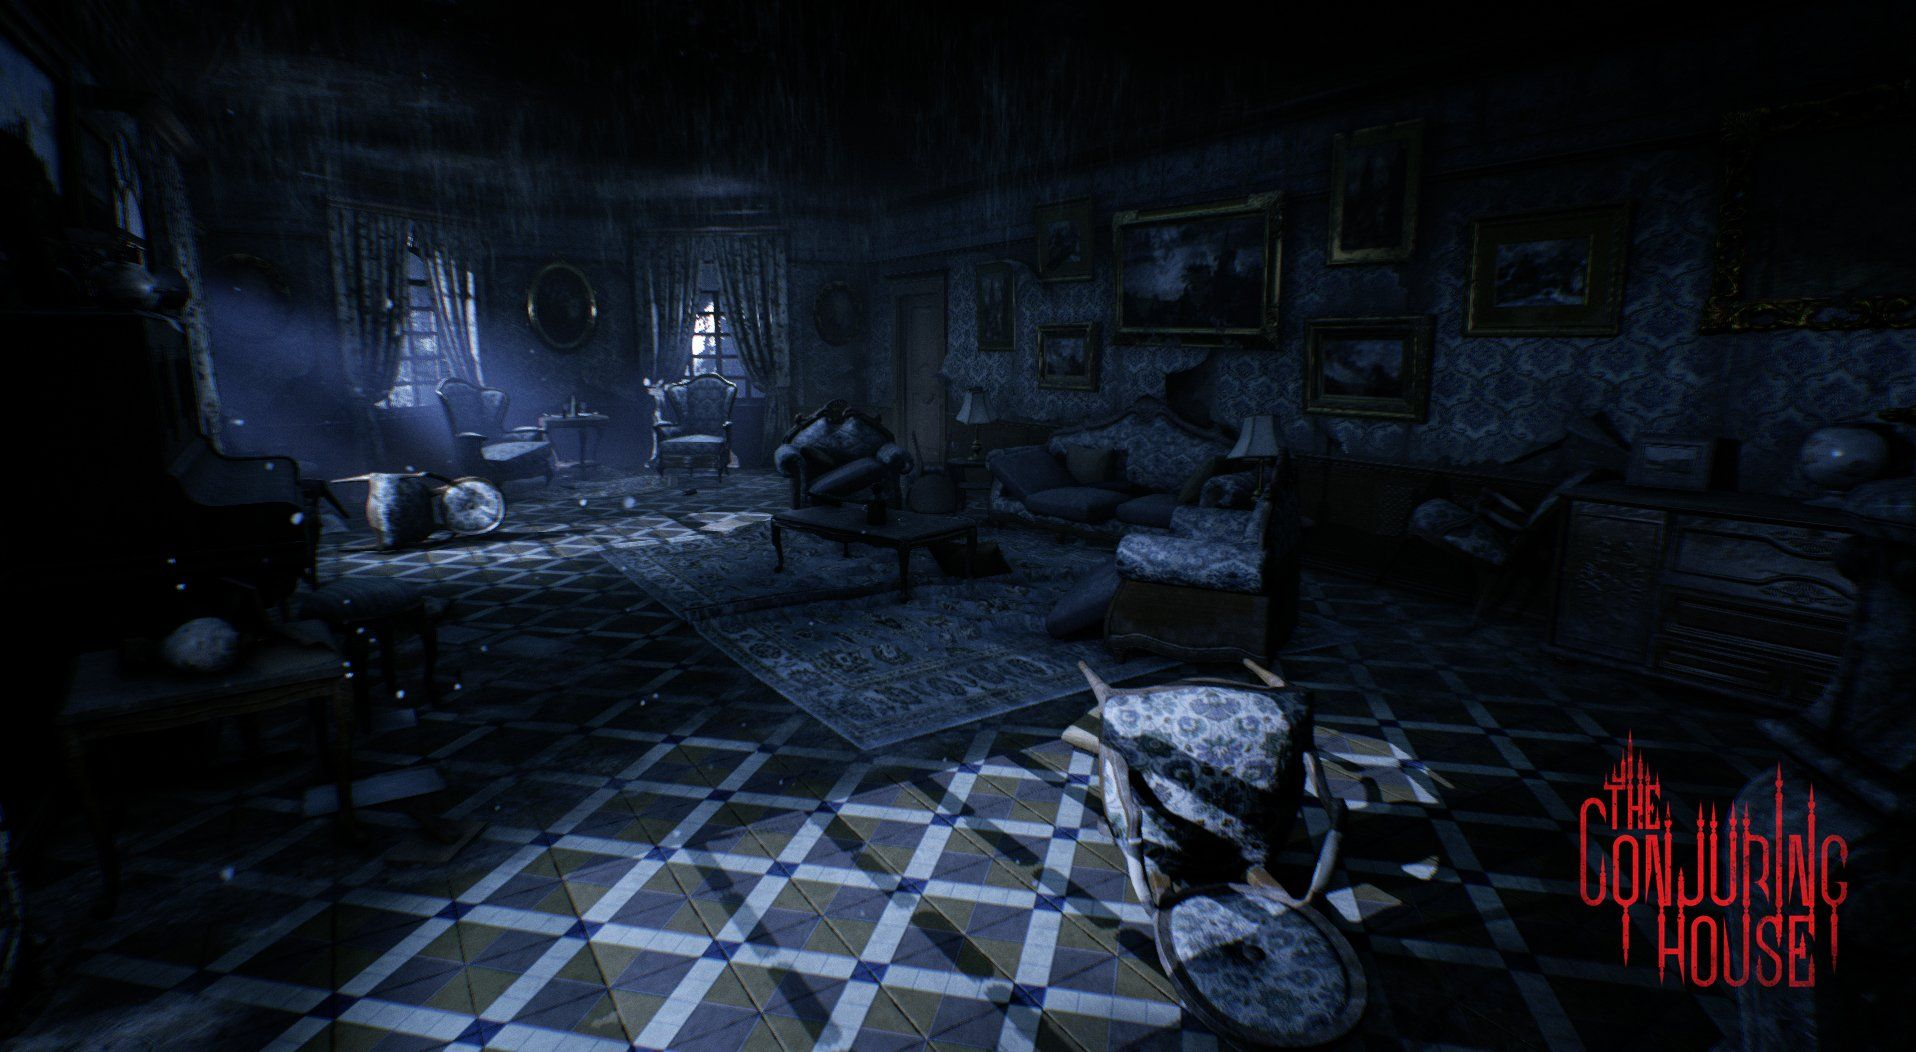 The Conjuring House   Survival Horror (PC, PS4) #TheConjuringHouse #Terrror  #SurvivalHorror